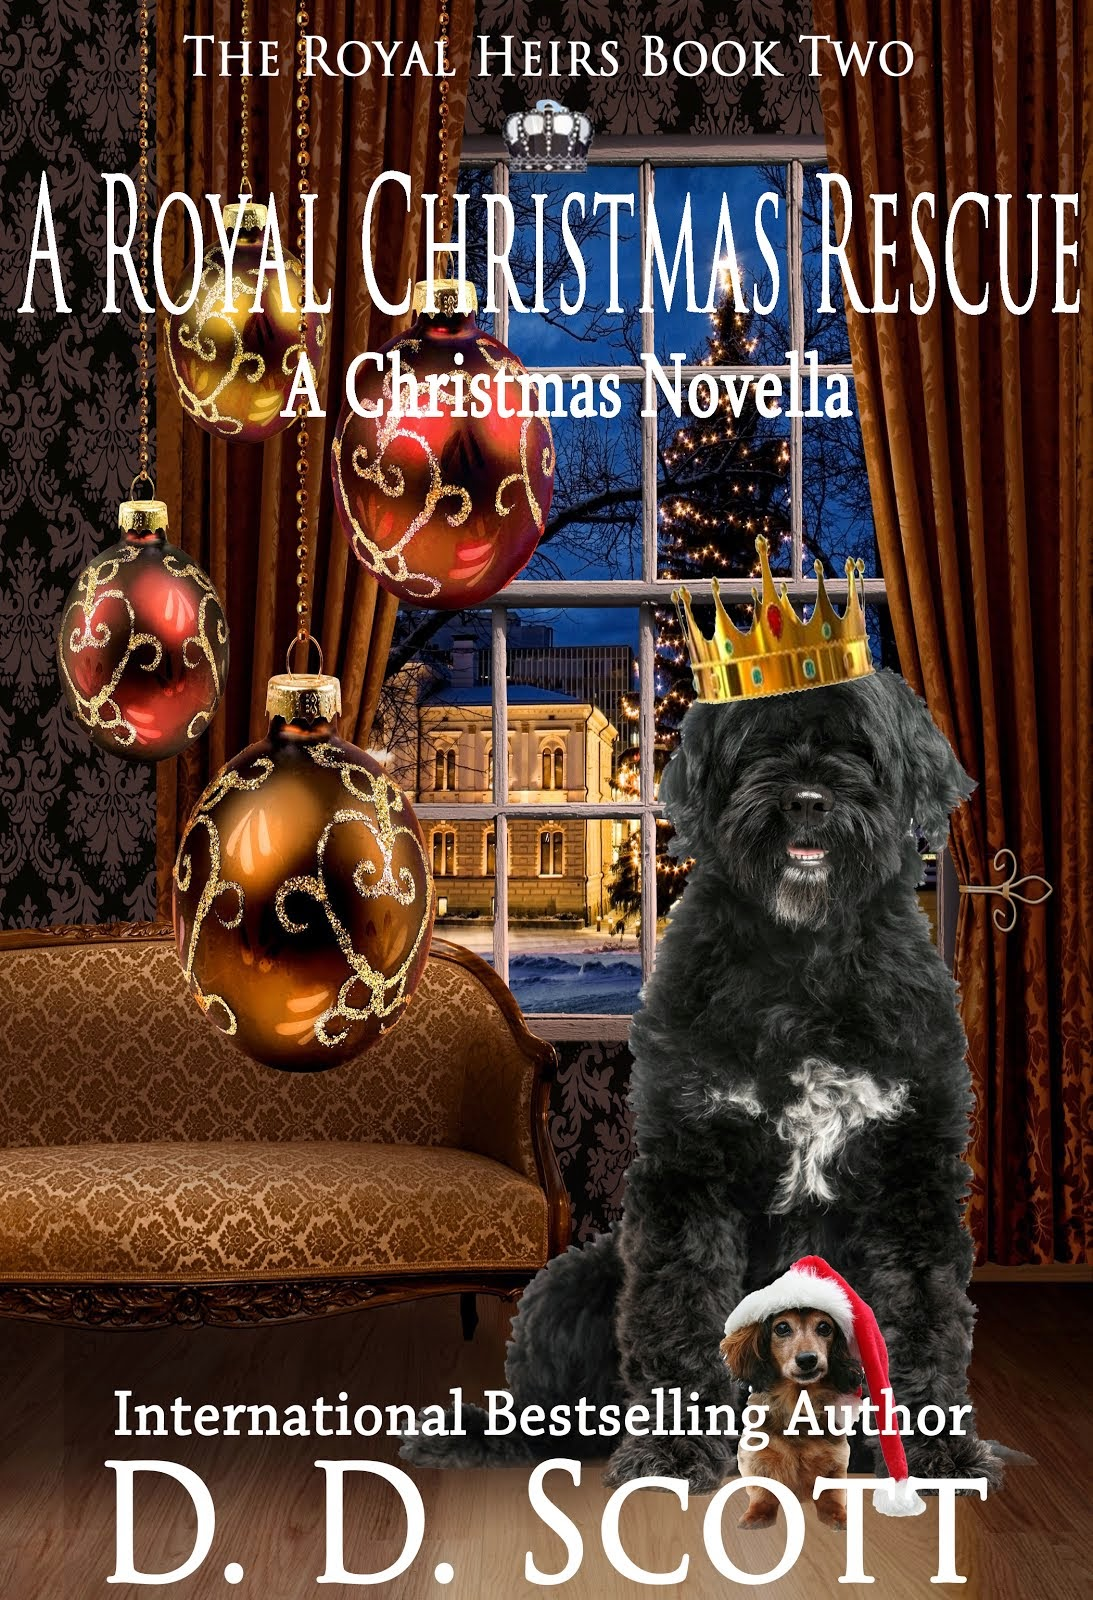 A Royal Christmas Rescue (The Royal Heirs Book 2)